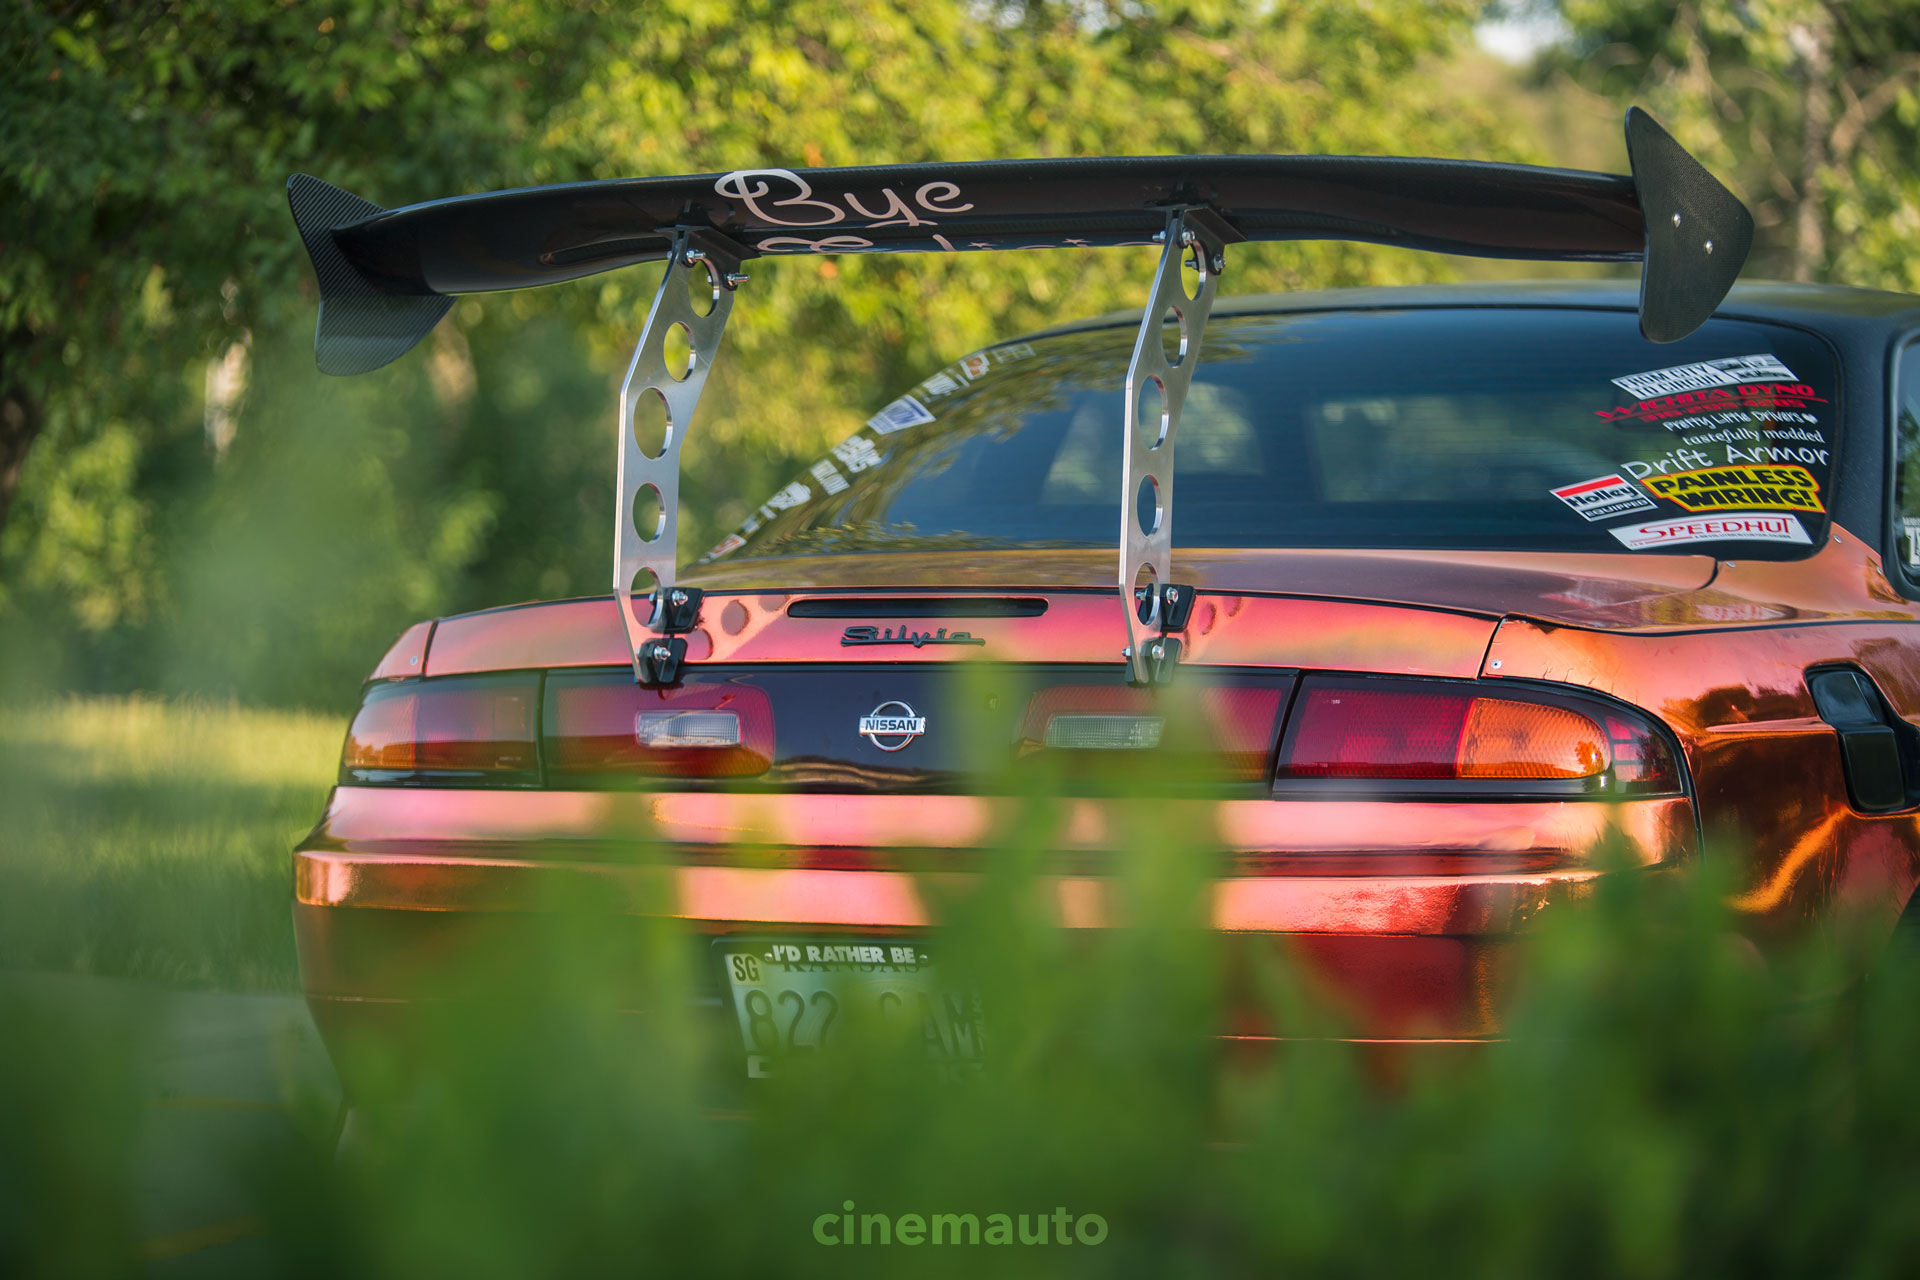 cinemauto-midwest-car-photography-jp14.jpg